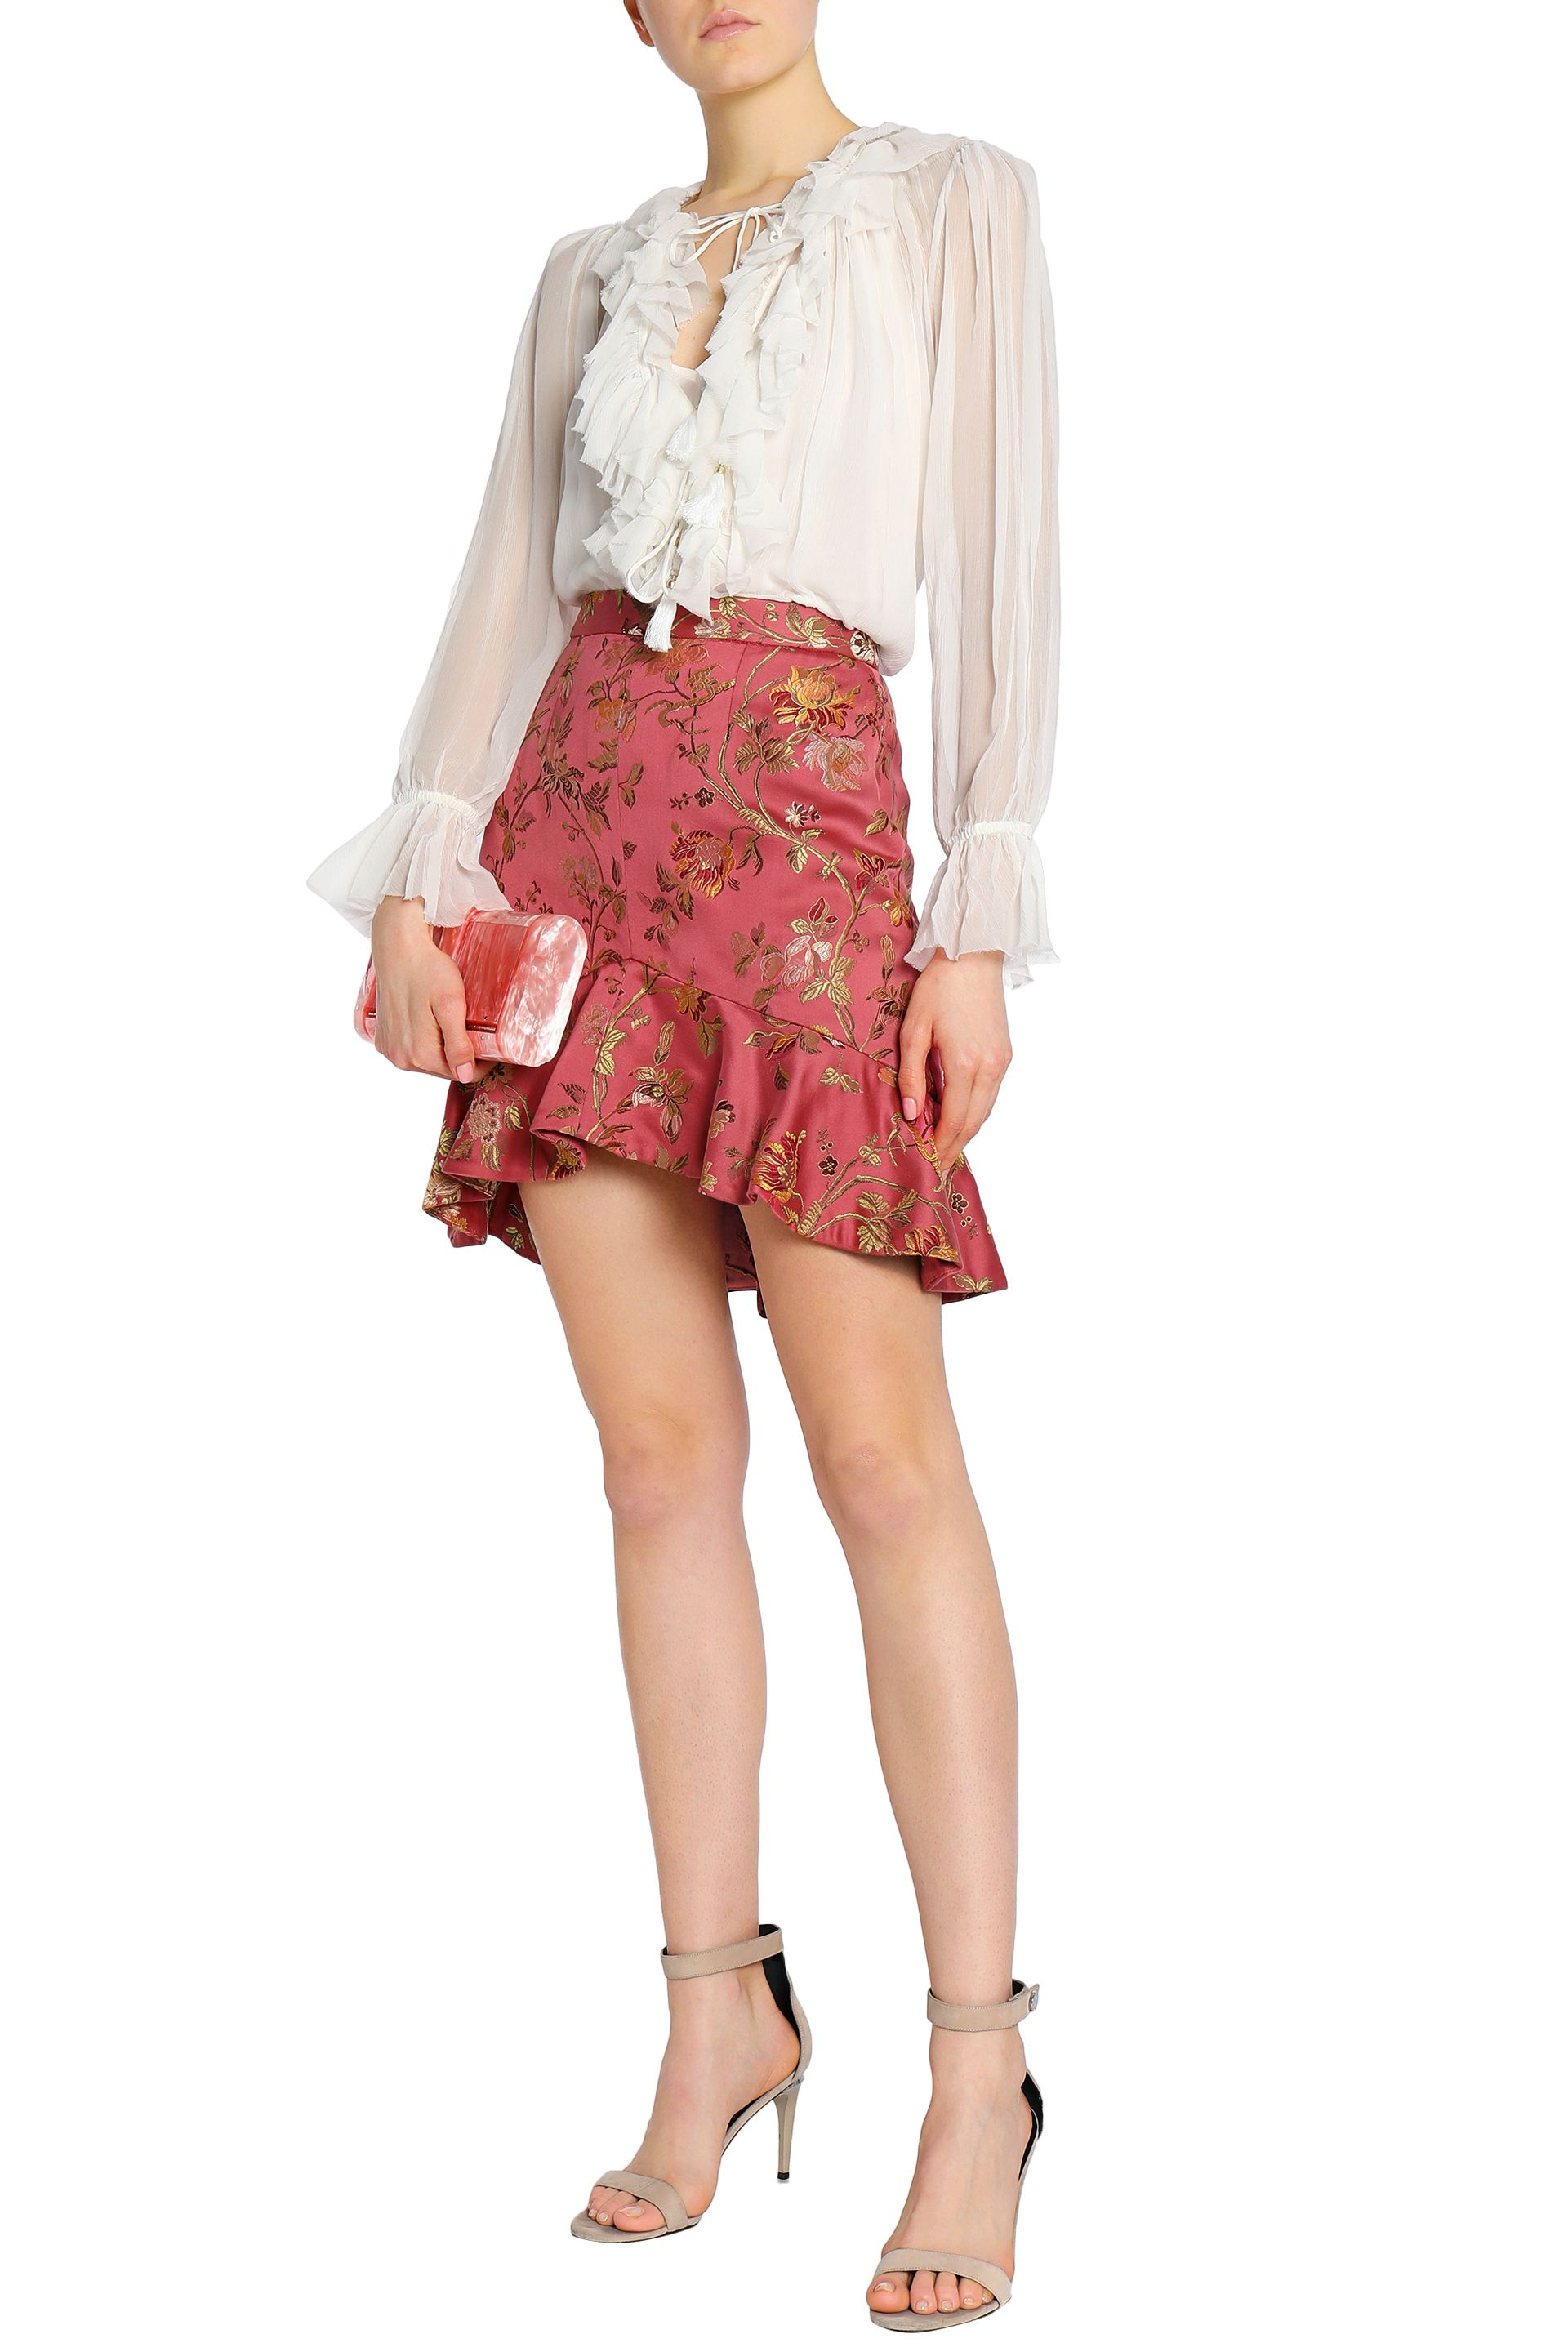 Zimmermann Clearance Sale - Up to 60% Off.jpg